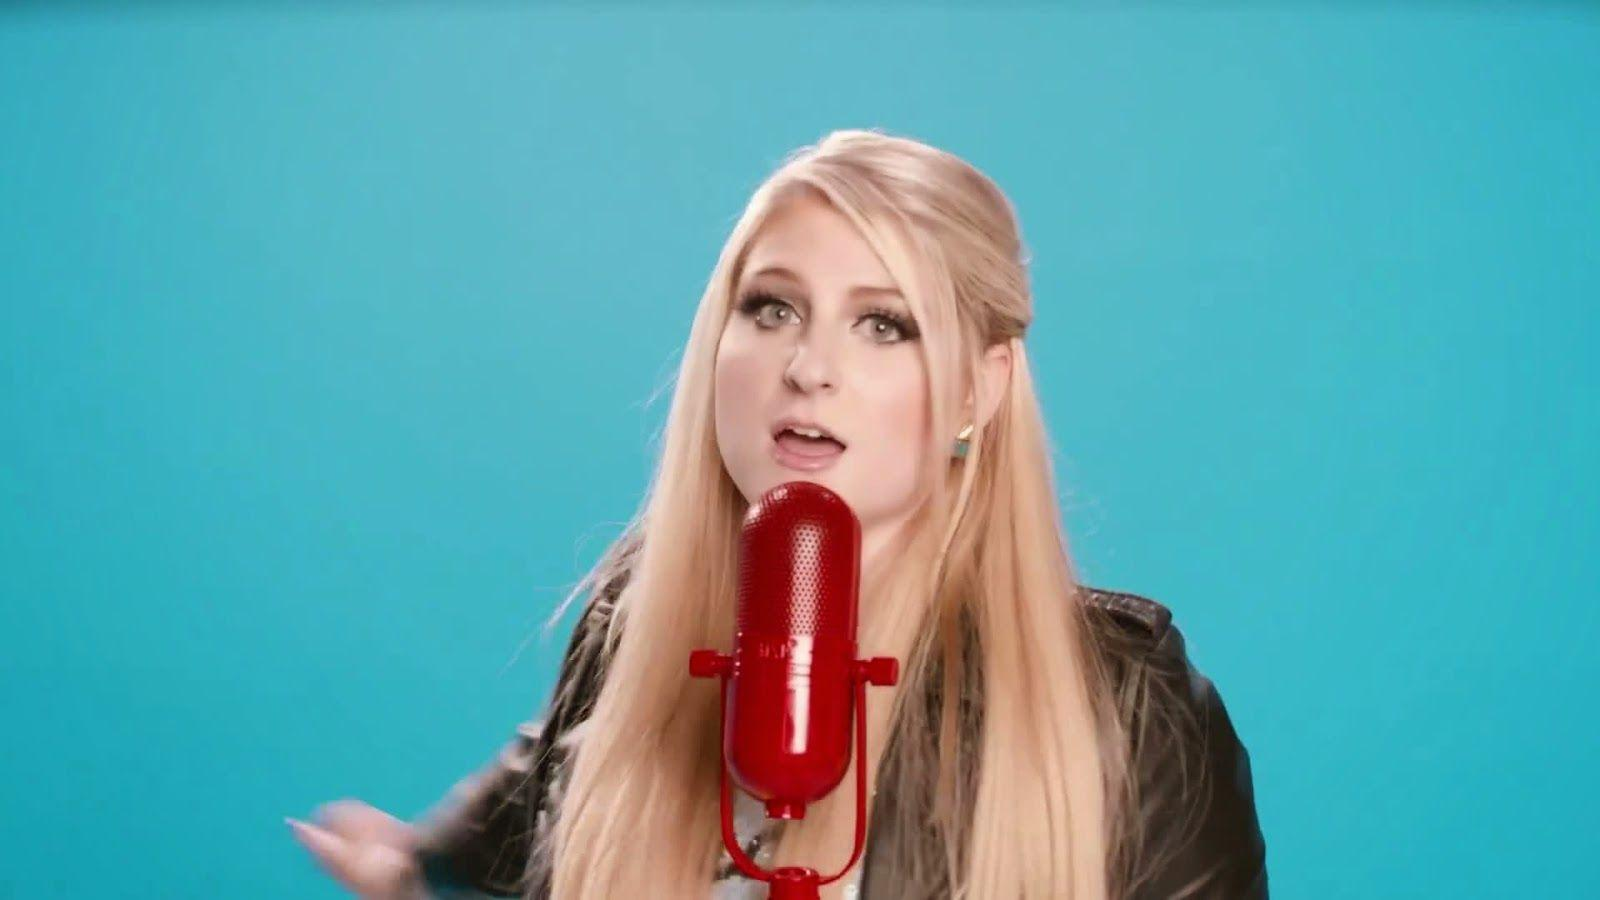 Meghan Trainor - Lips Are Movin - Wallpapers Screenshots Pictures ...